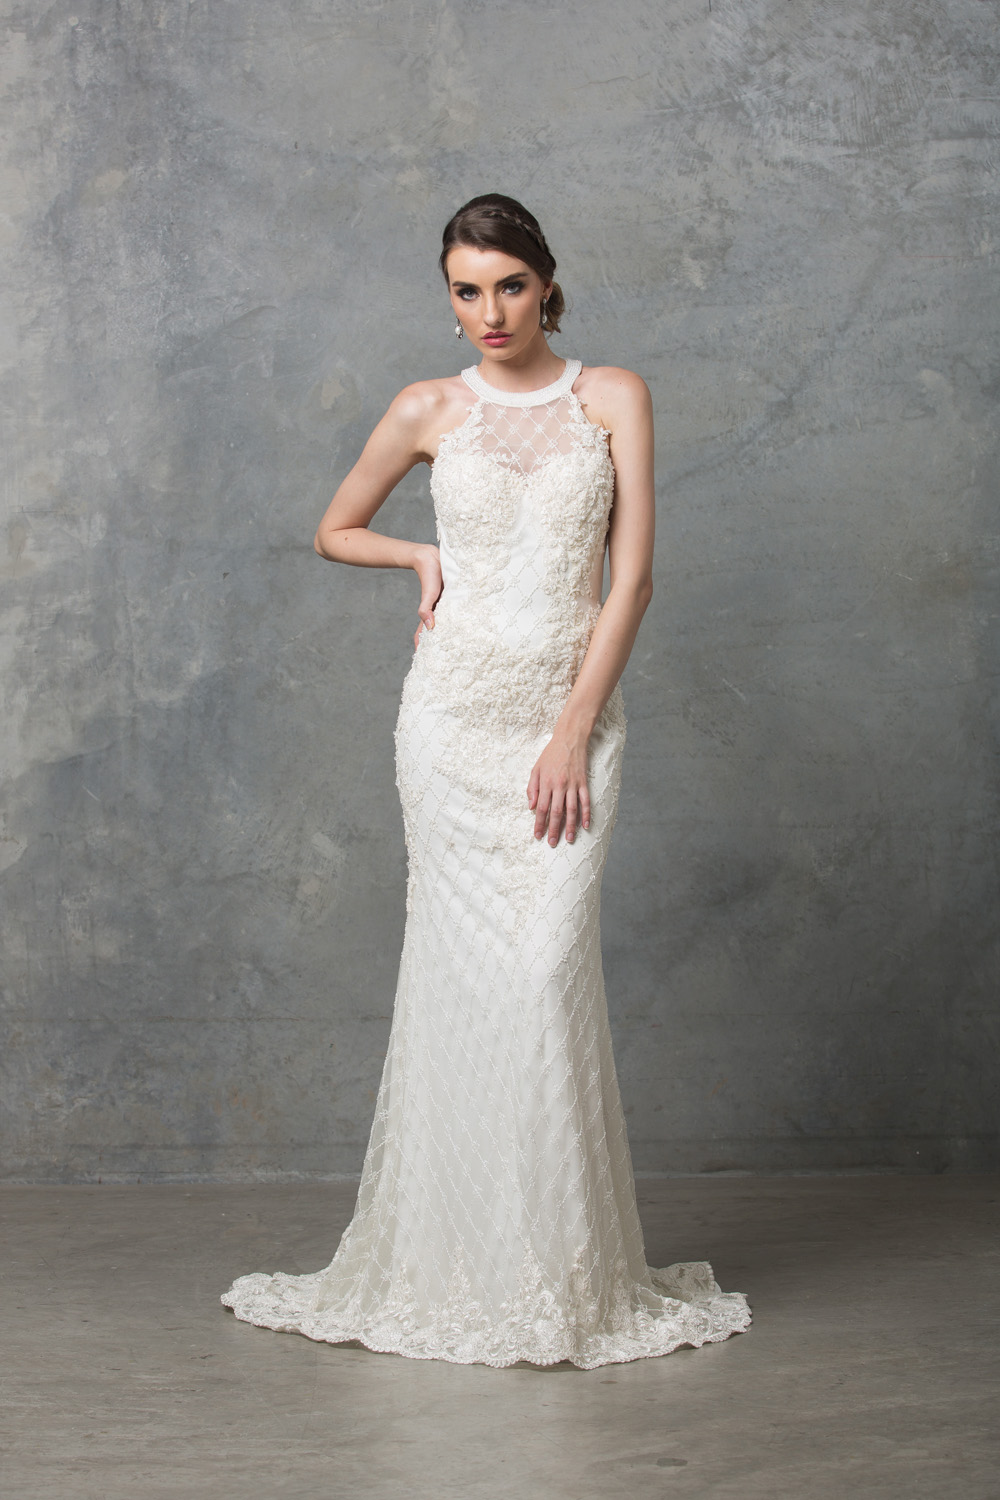 Clarissa beaded high neck wedding dress sentani boutique clarissa beaded high neck wedding dress junglespirit Choice Image